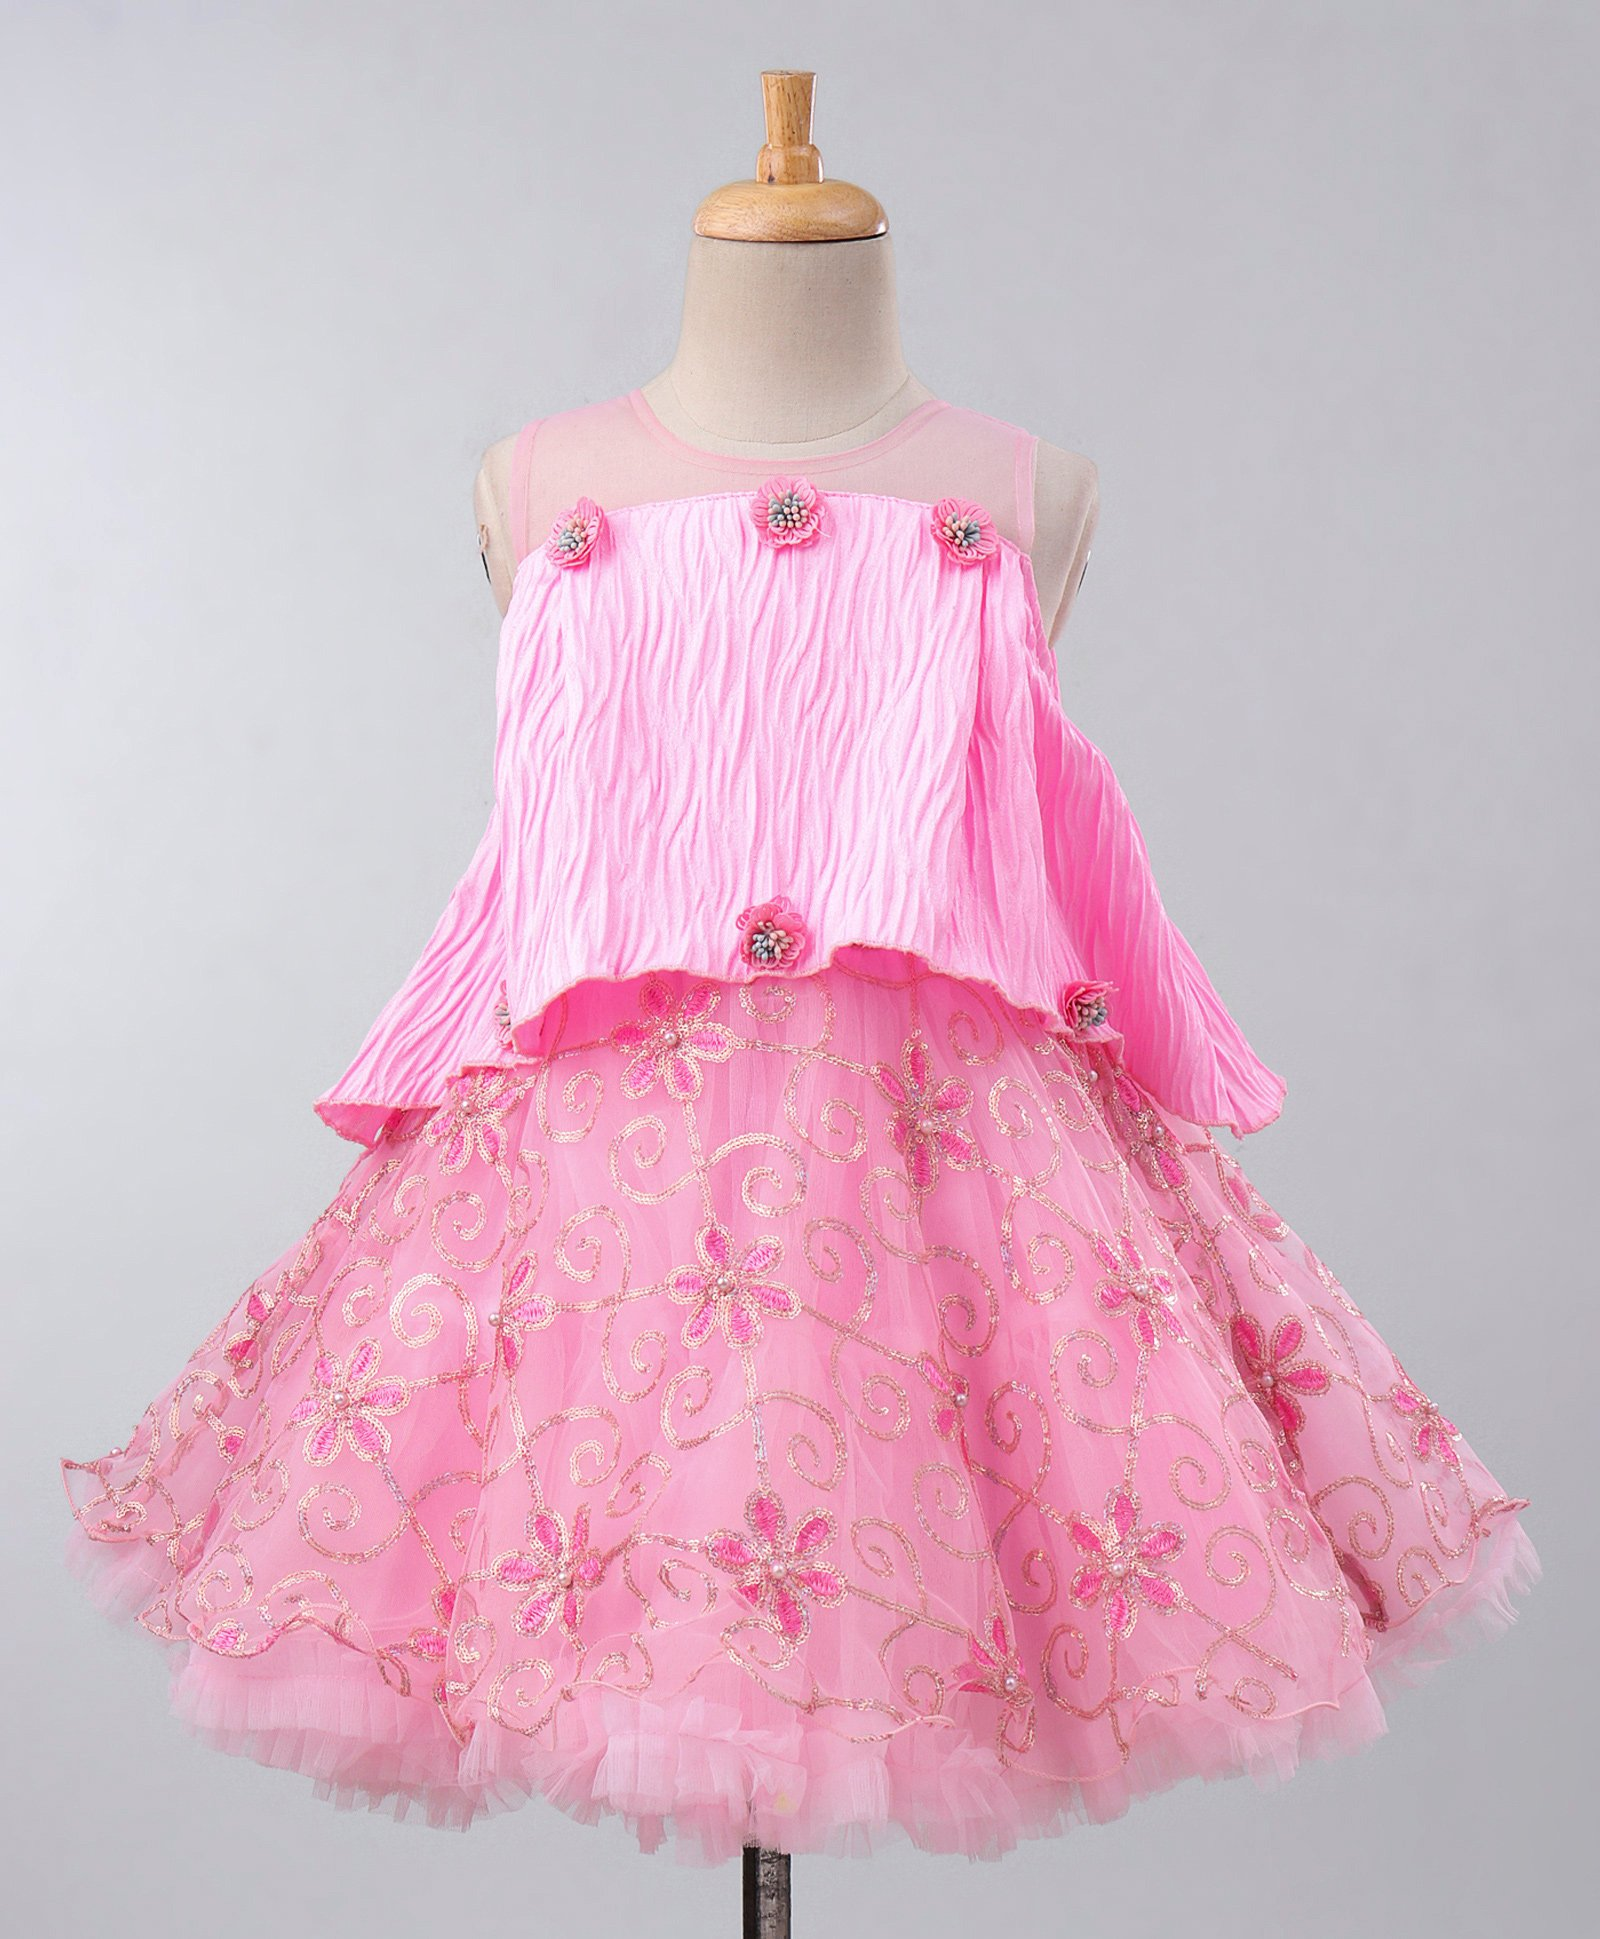 30a739e6 Maalka Sleeveless Sequin Embellished Flower Embroidered Poncho Style Dress  - Pink. 3 to 4 Years ...